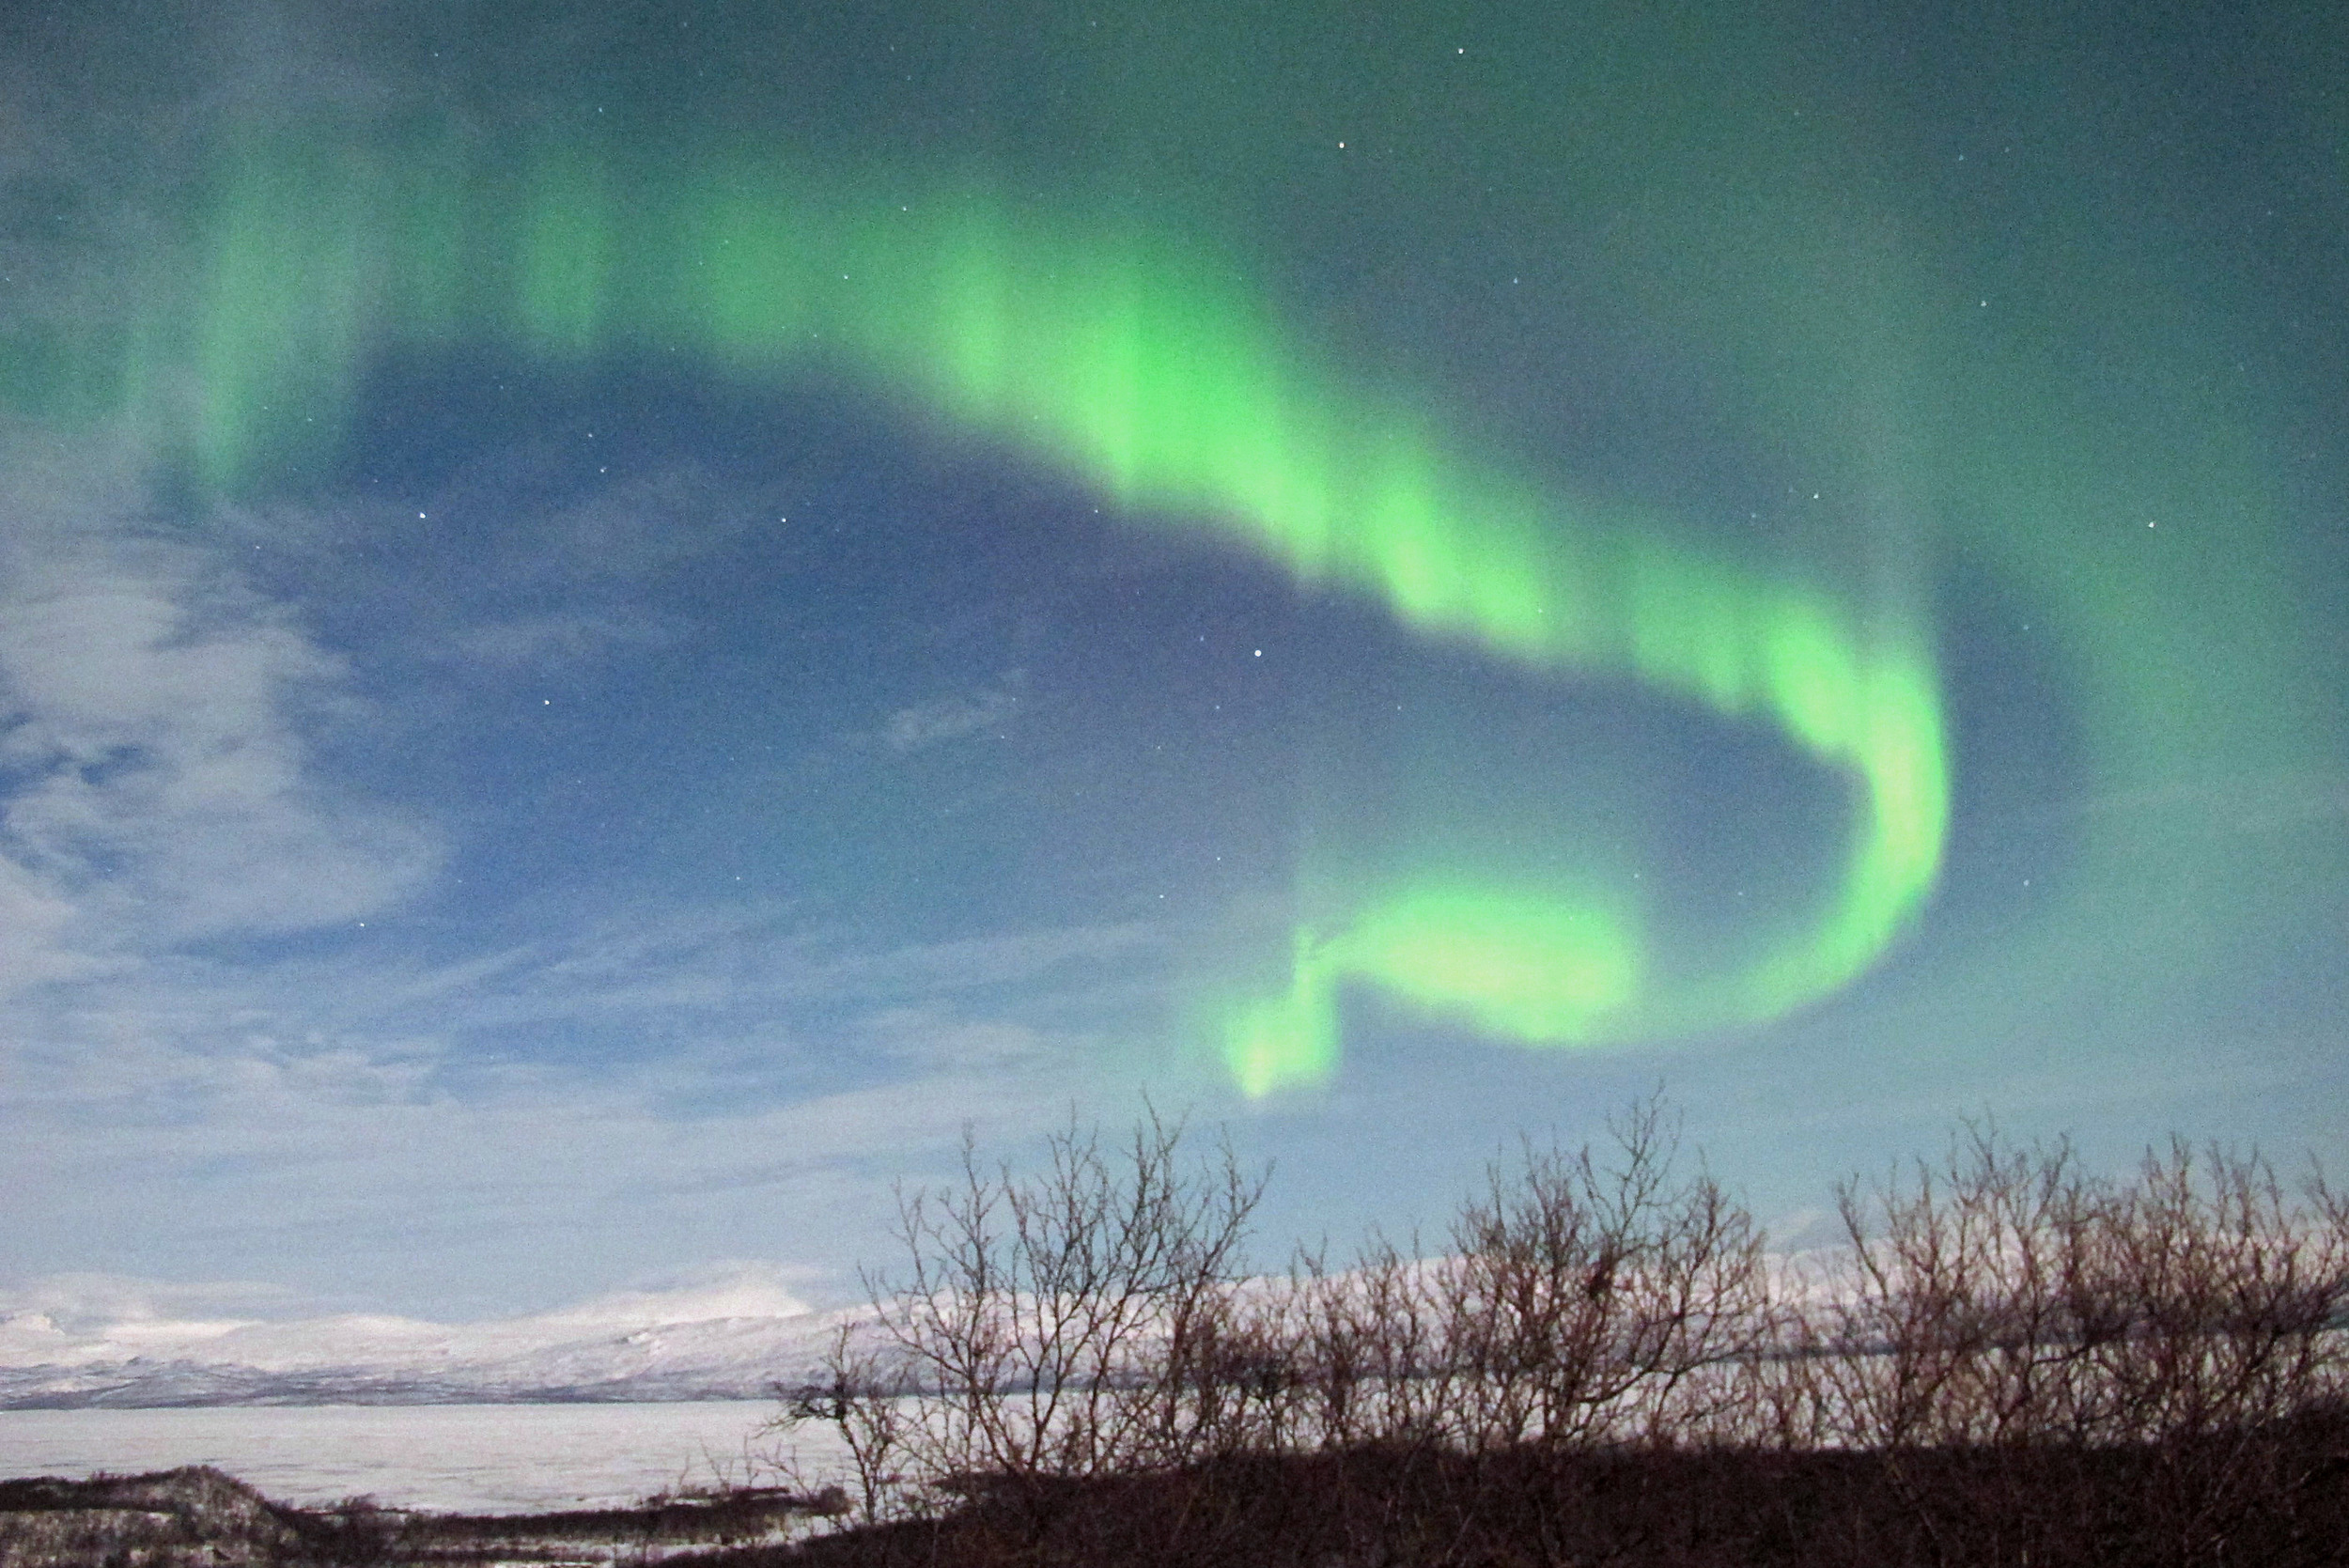 Northern lights may expand south next couple days - AOL News